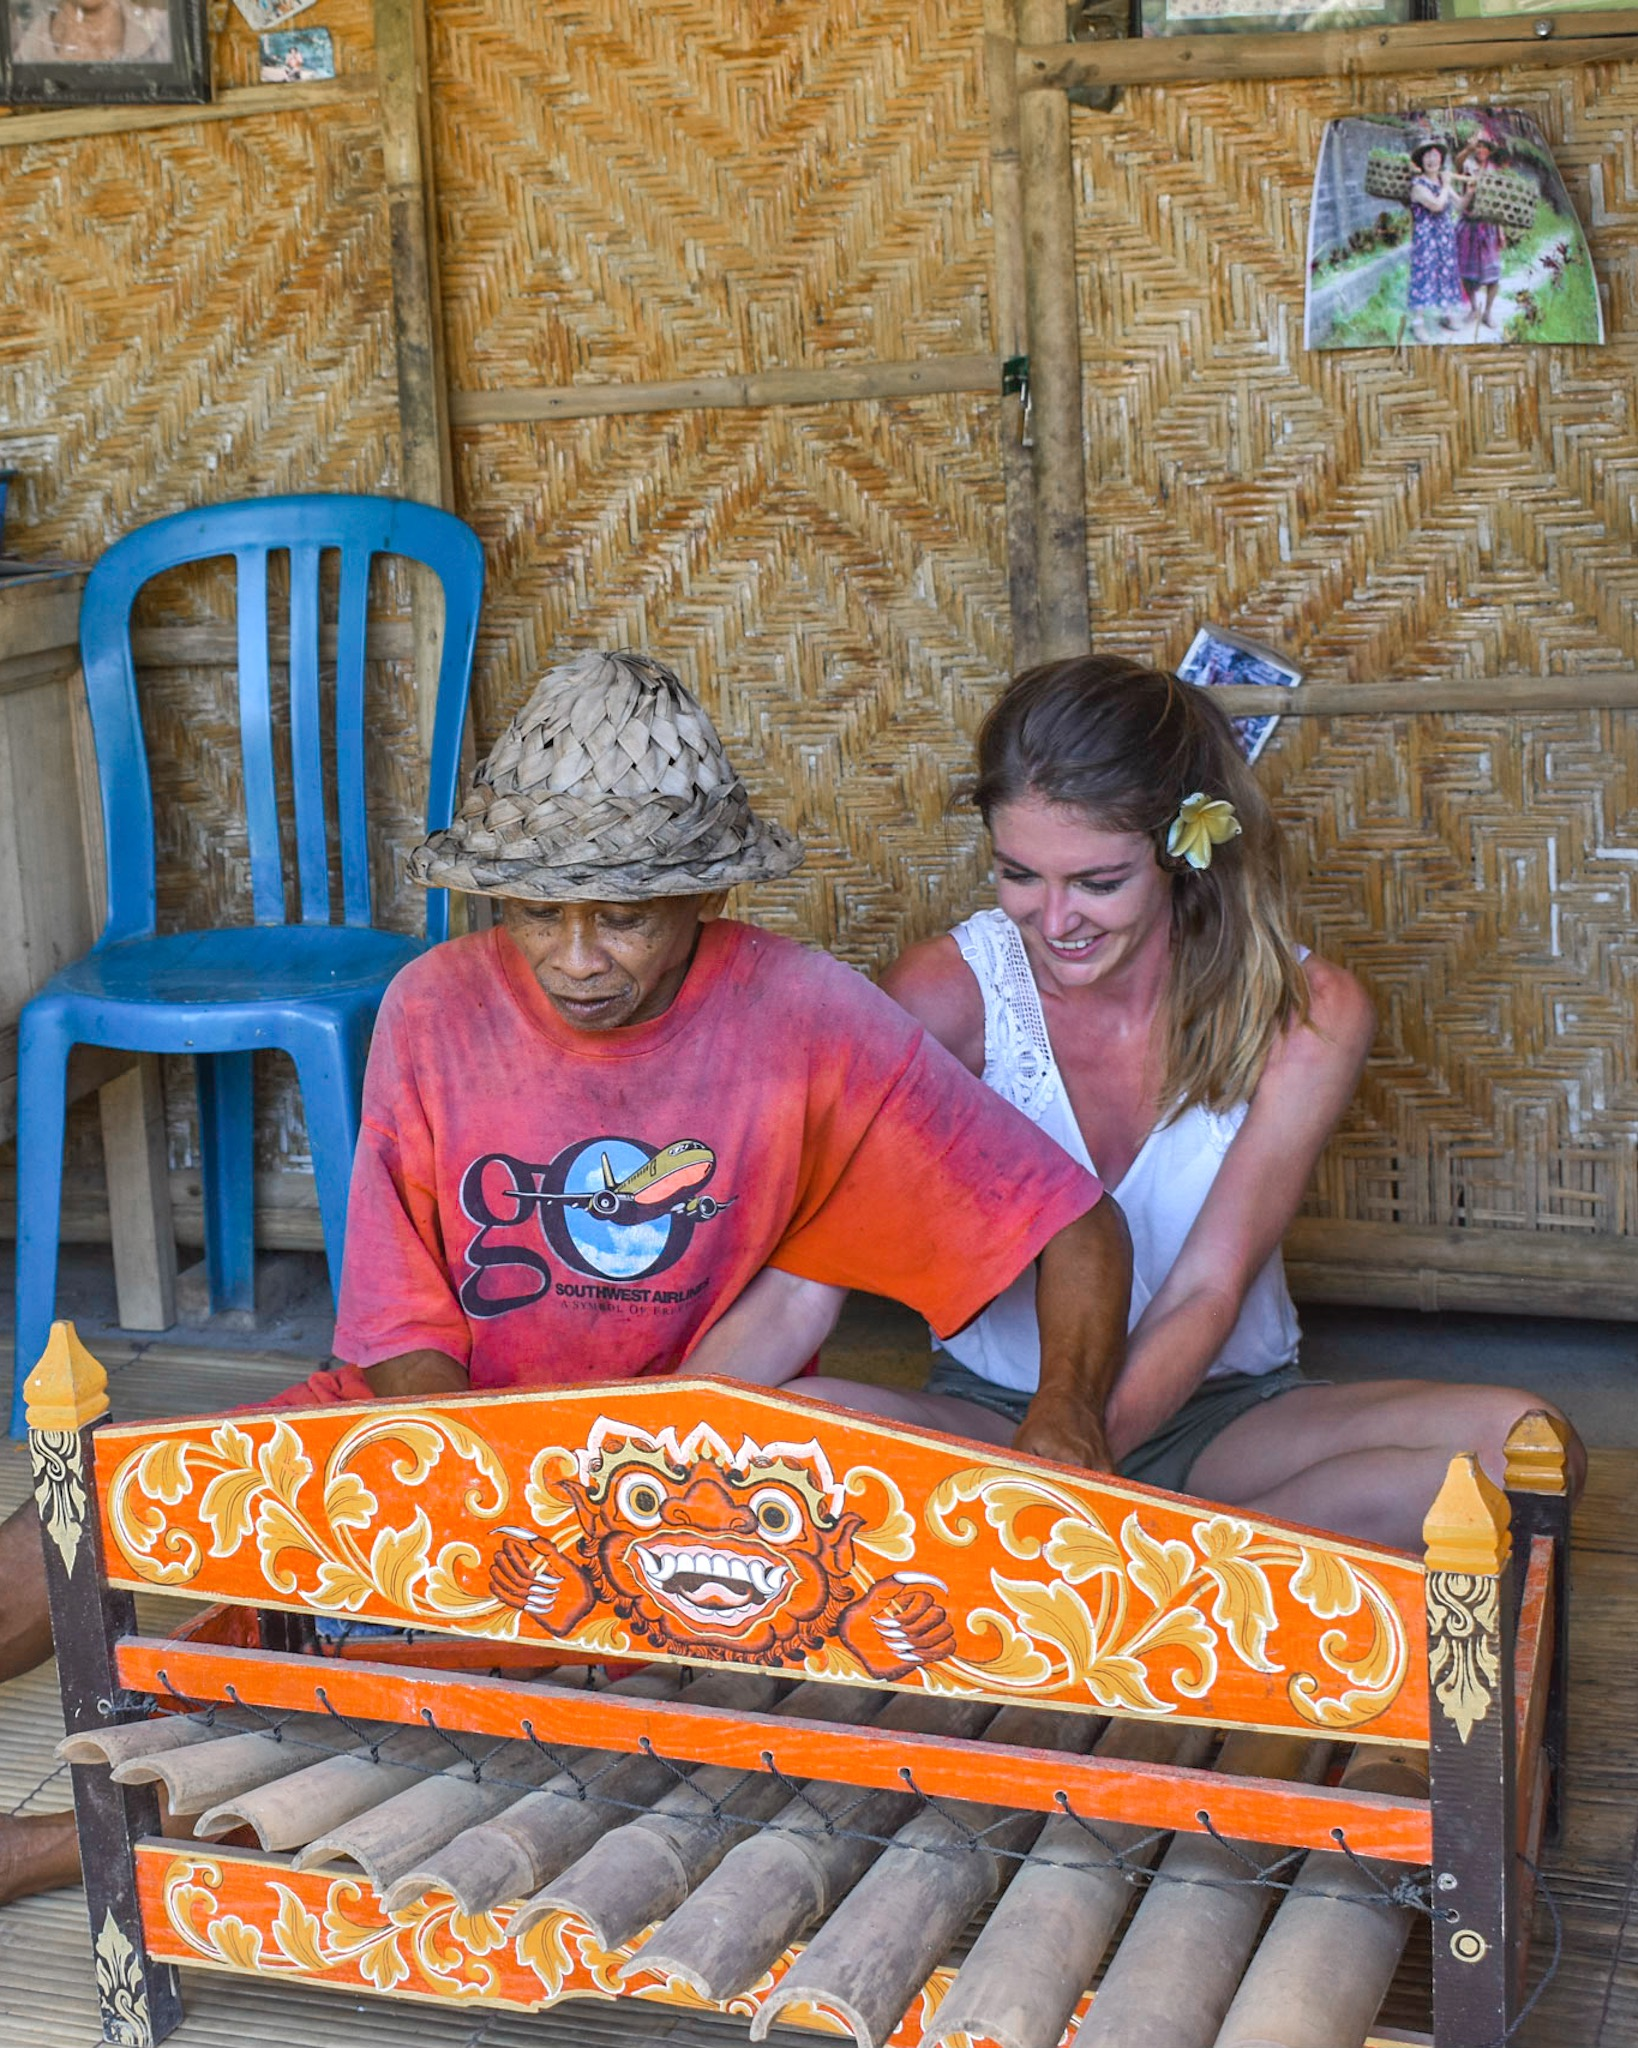 Man Teaches Woman to Play Handmade Xylophone in Bali, Indonesia